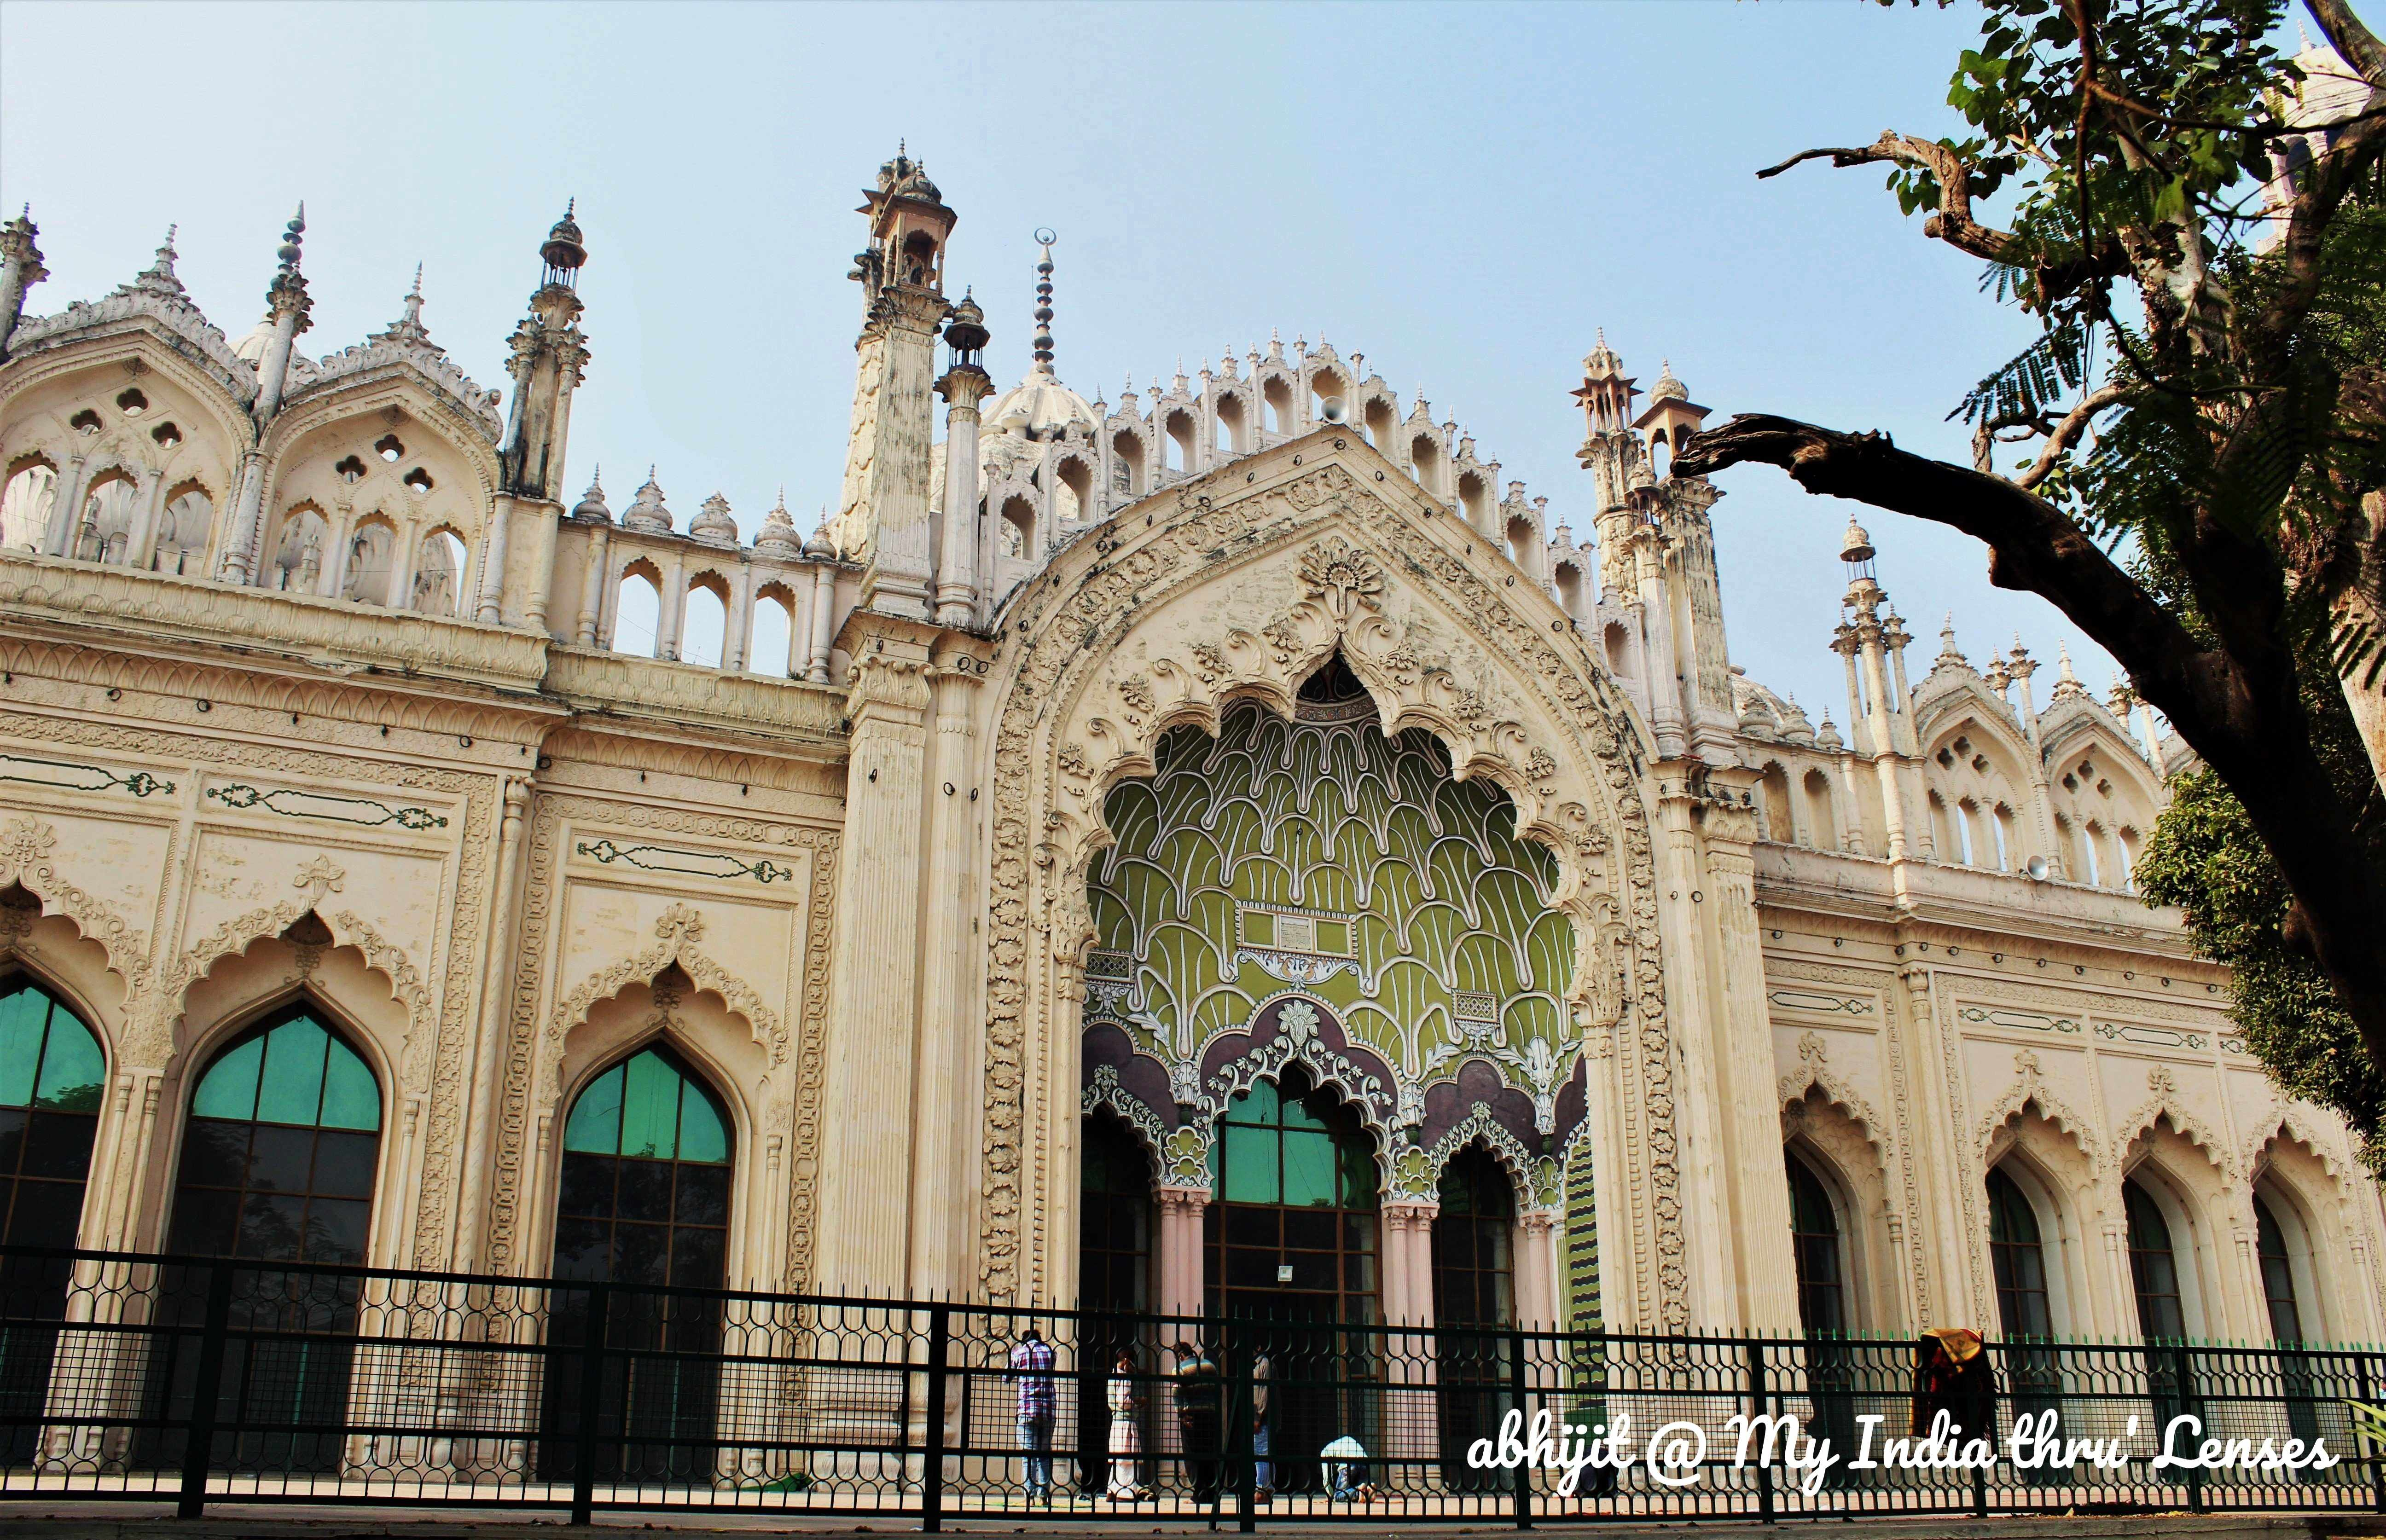 The Jama Masjid, Lucknow